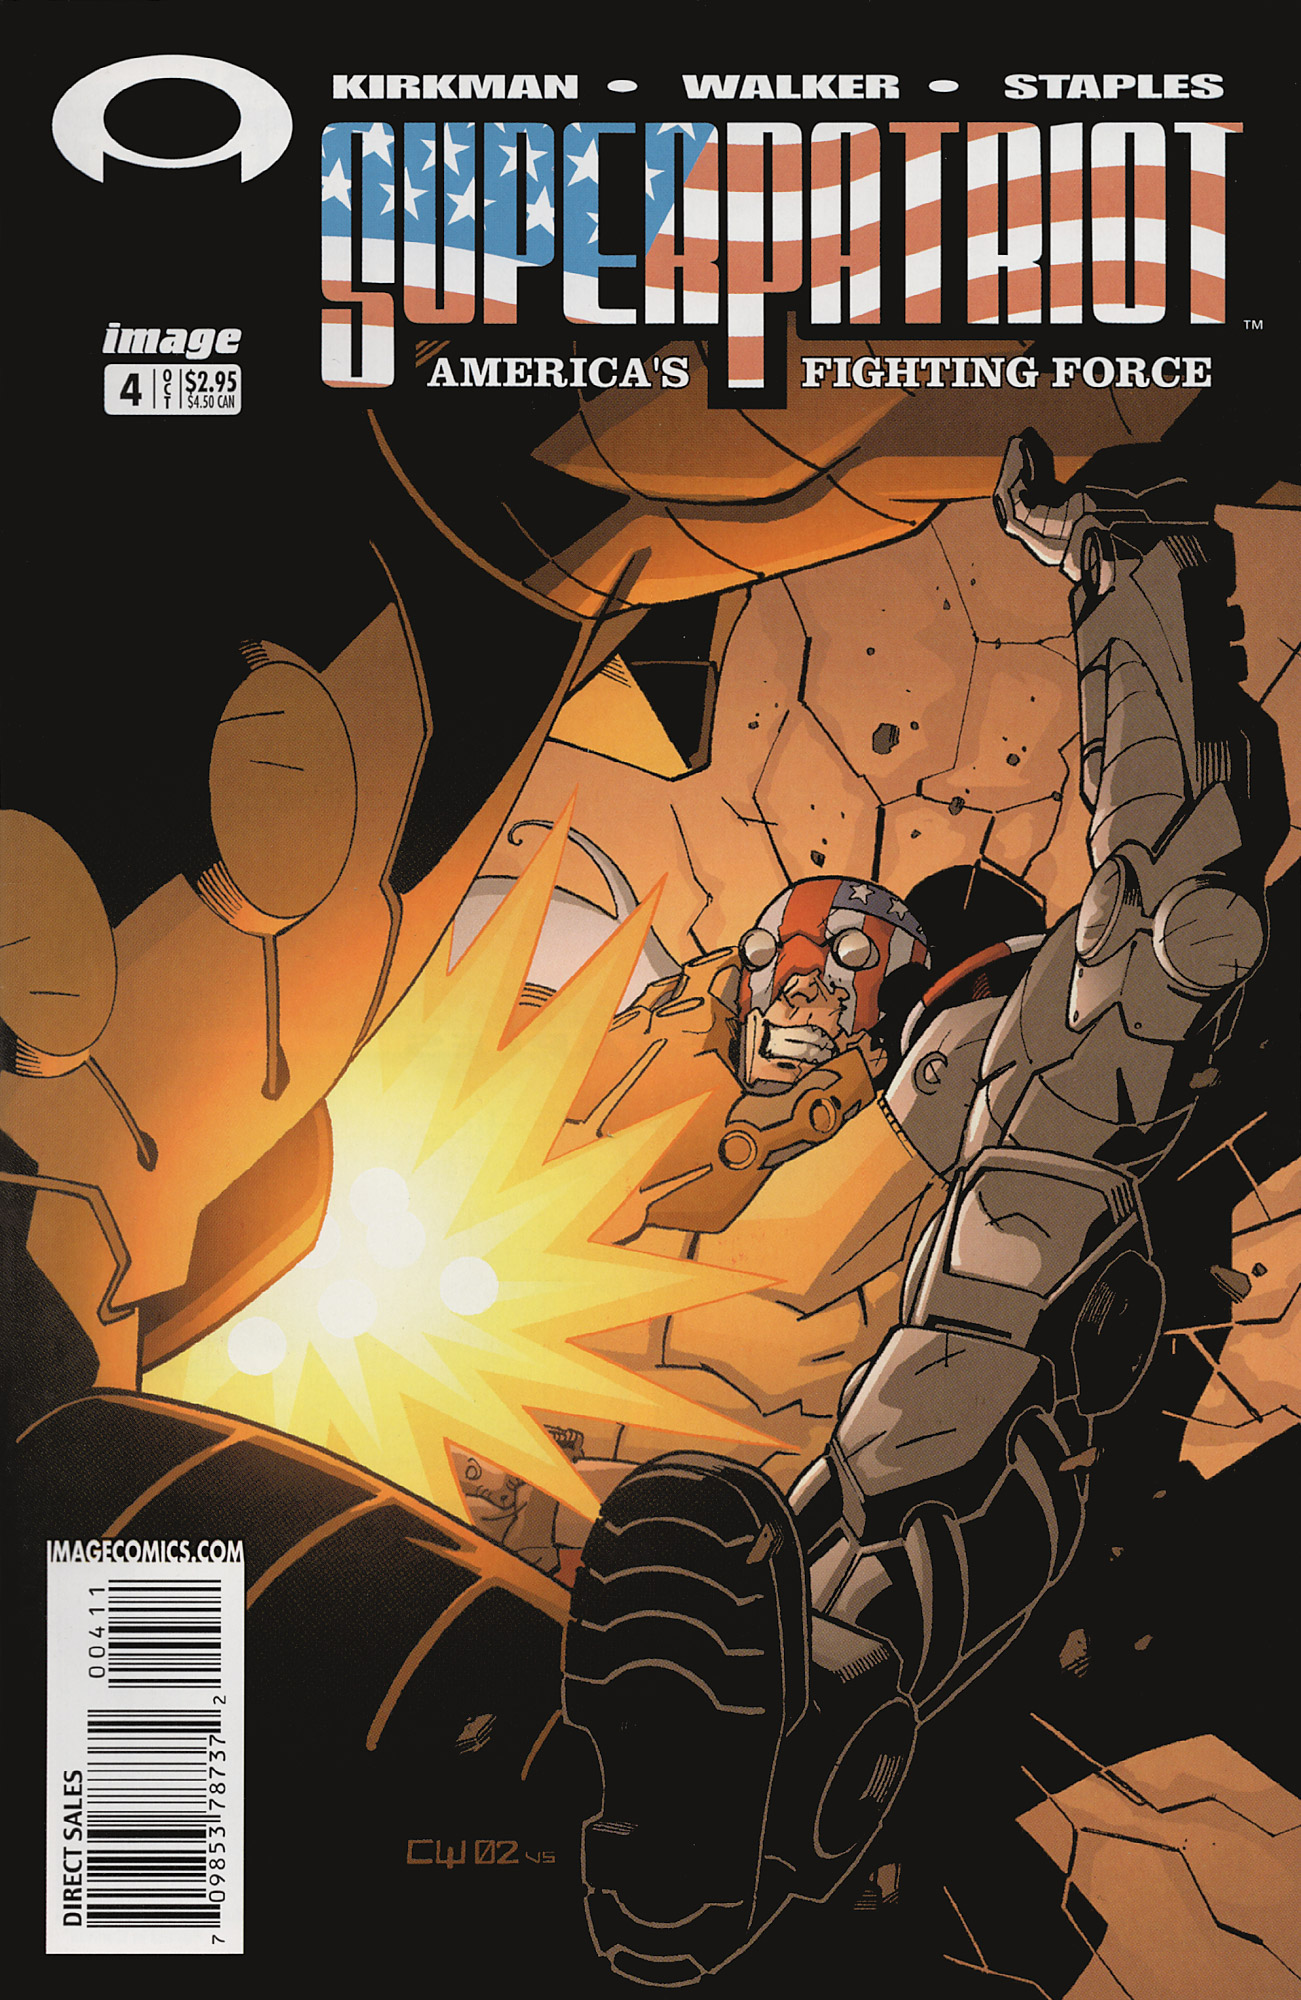 Cover SuperPatriot Vol.3 #3